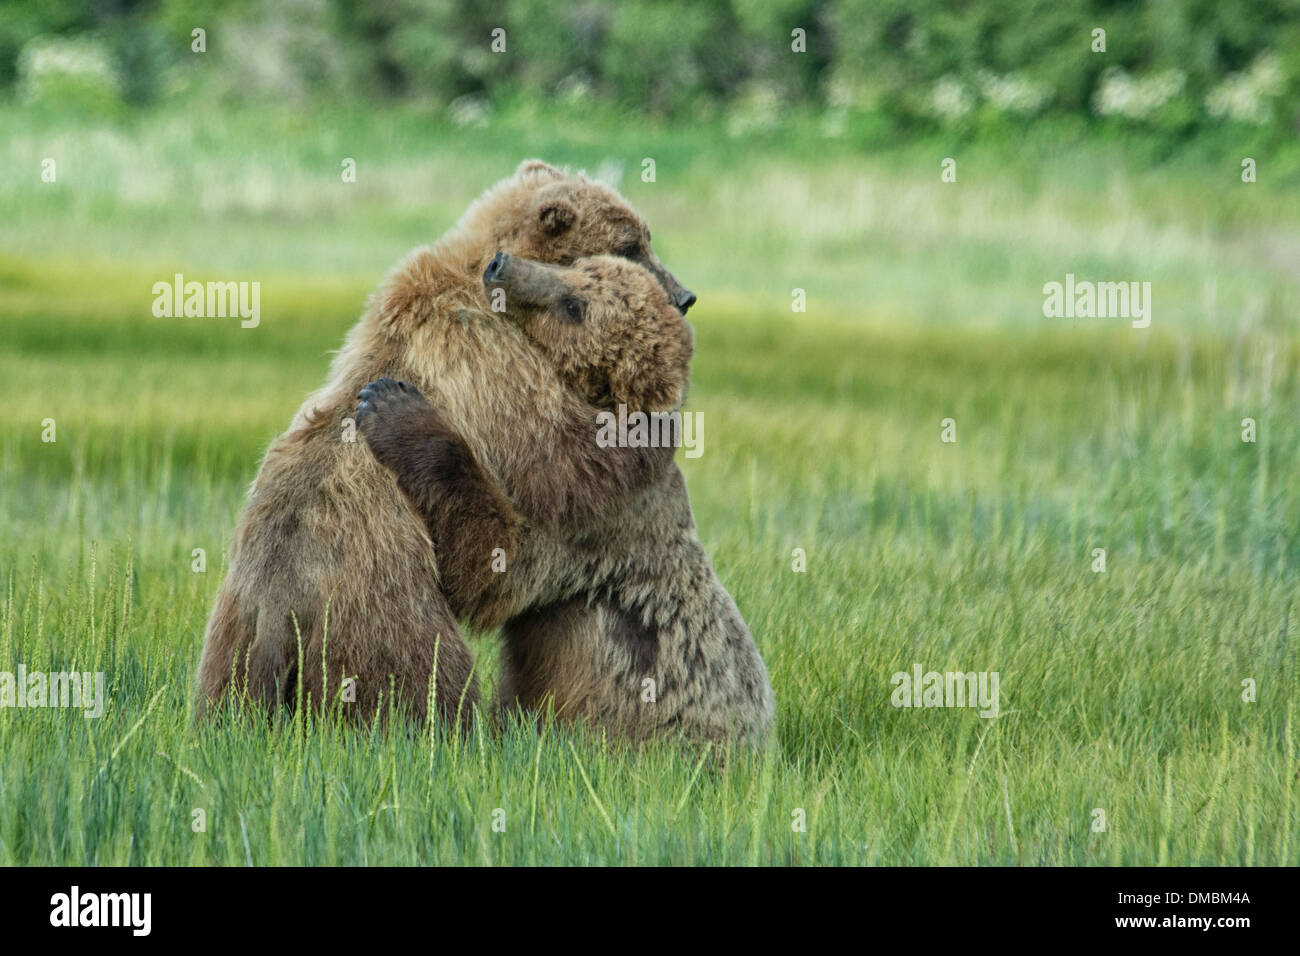 Grizzly Bear Yearling Cubs, Alaskan Brown Bears, Ursus arctos, hugging during a bout of play fighting, Lake Clark National Park, Alaska, USA - Stock Image